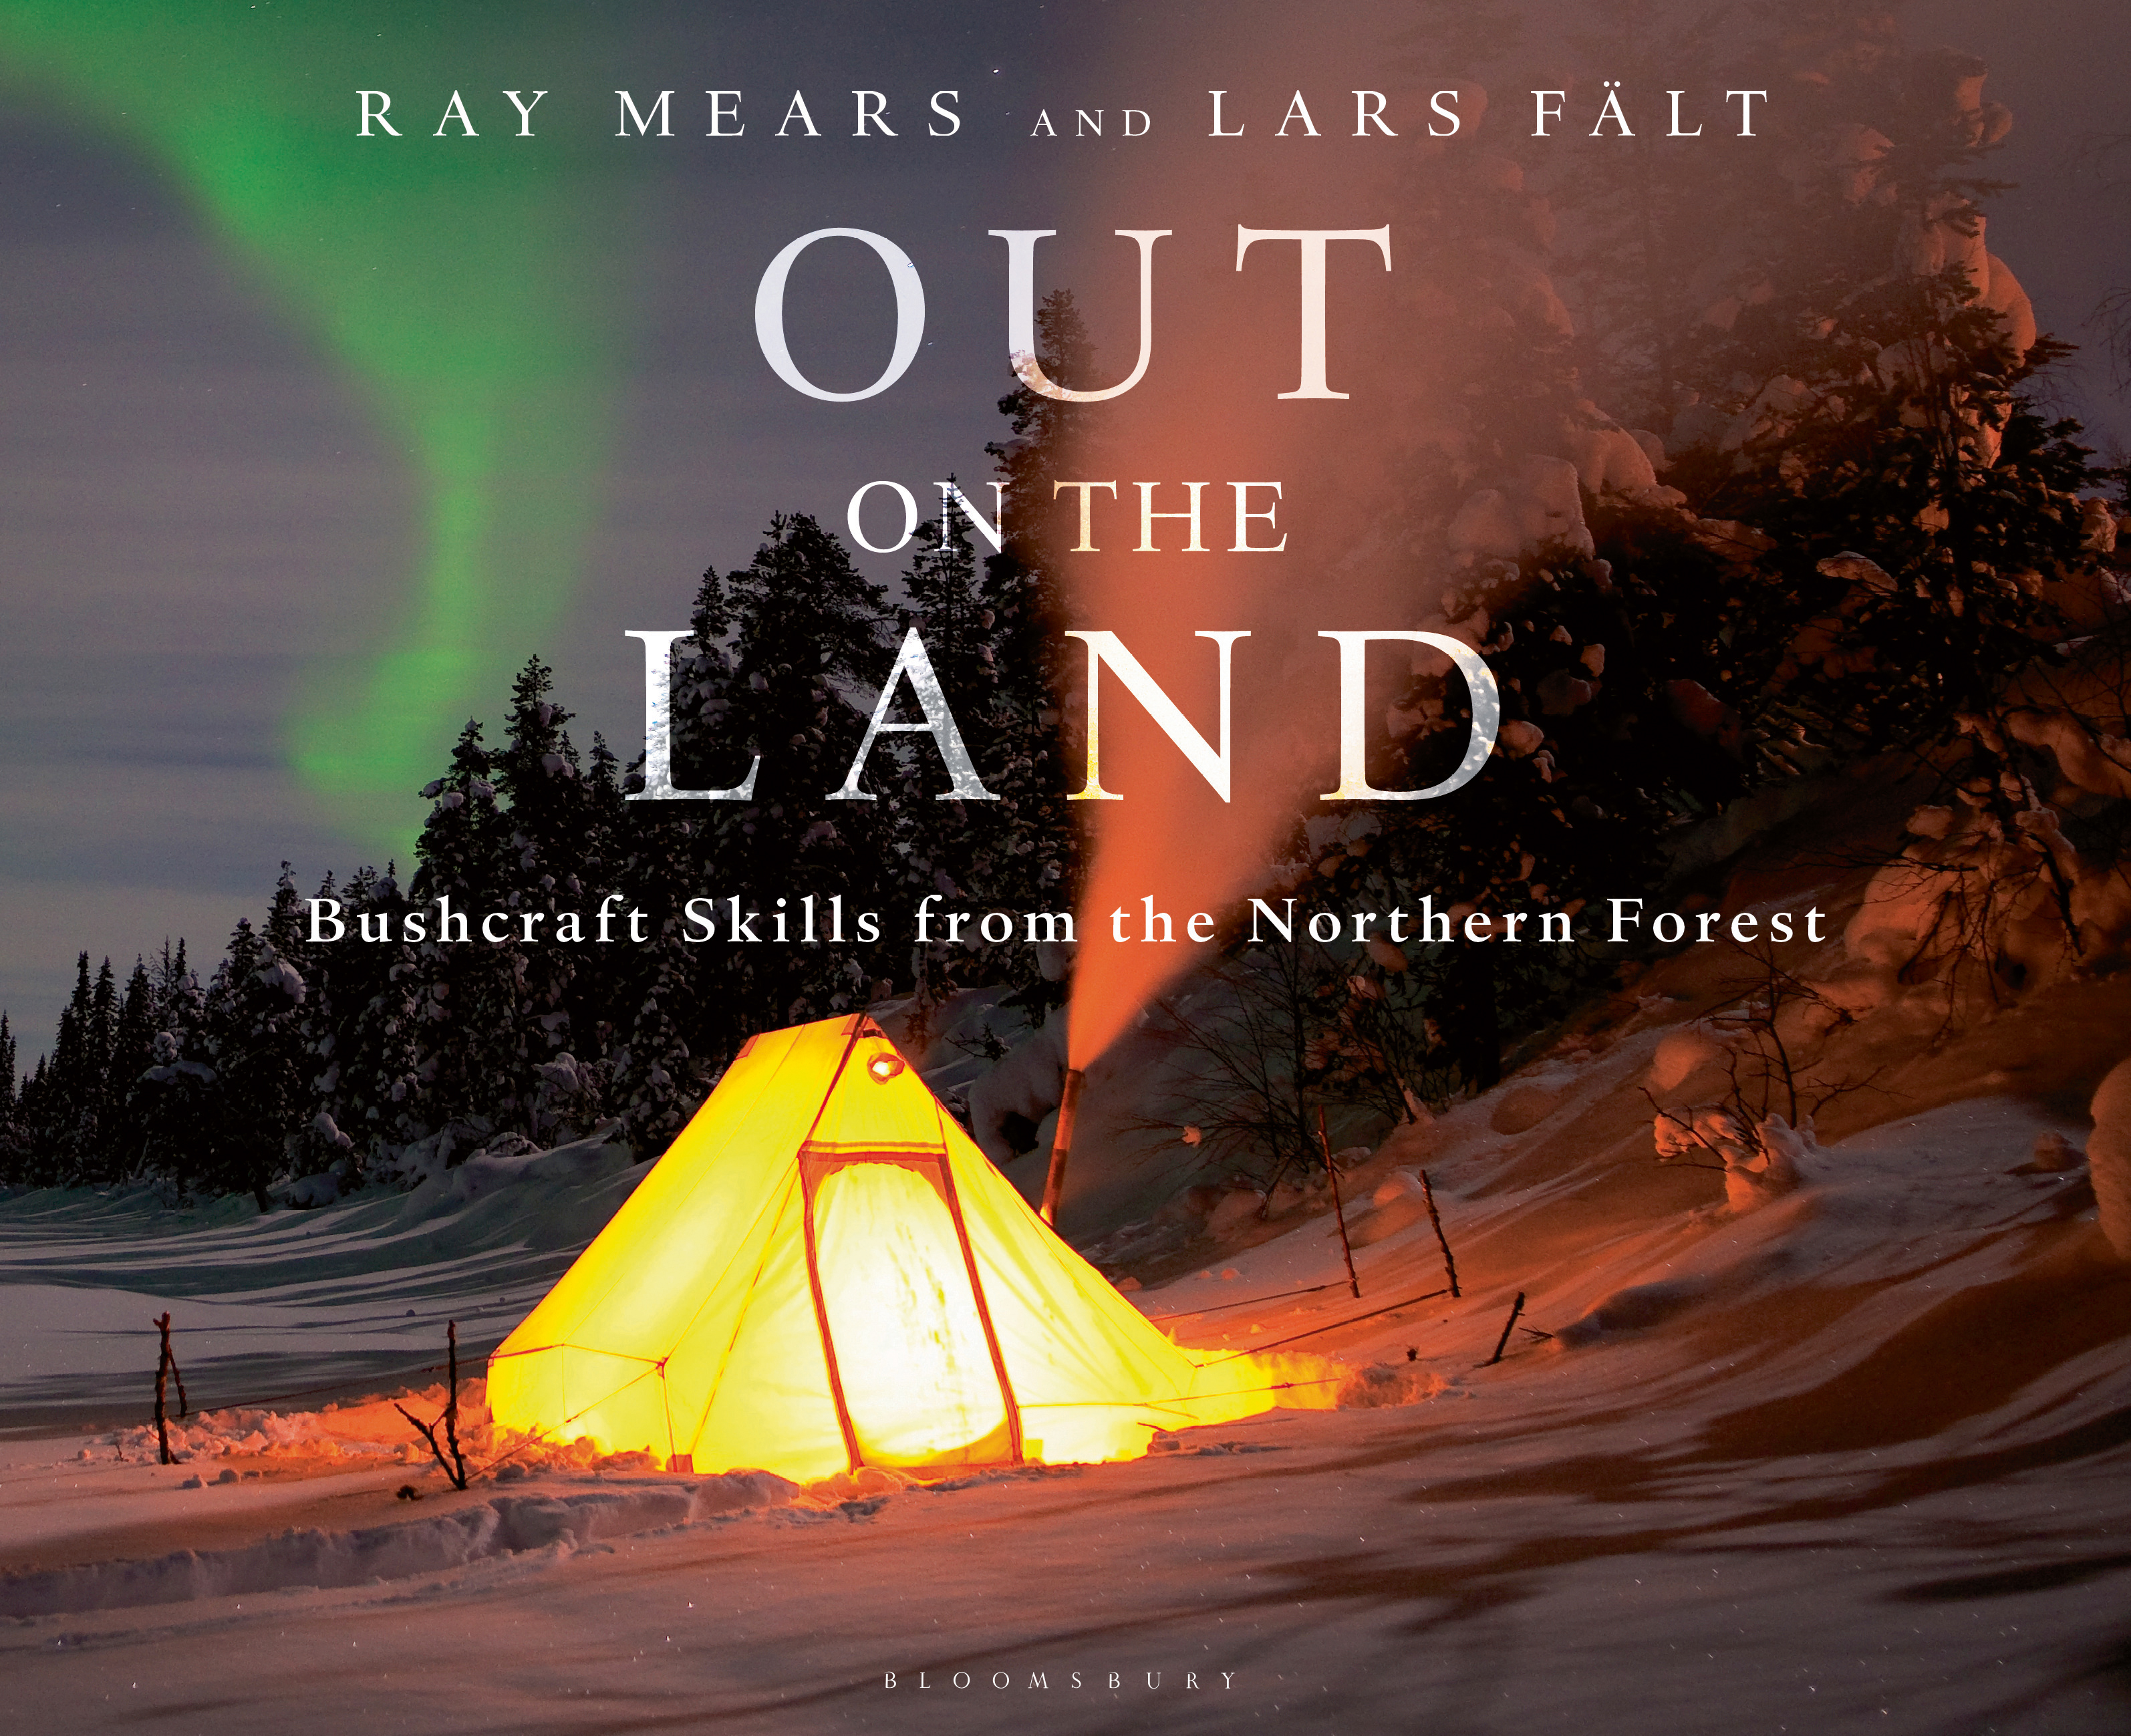 Out on the Land | Ray Mears 9781472924988 Ray Mears Bloomsbury Publishing   Campinggidsen Reisinformatie algemeen